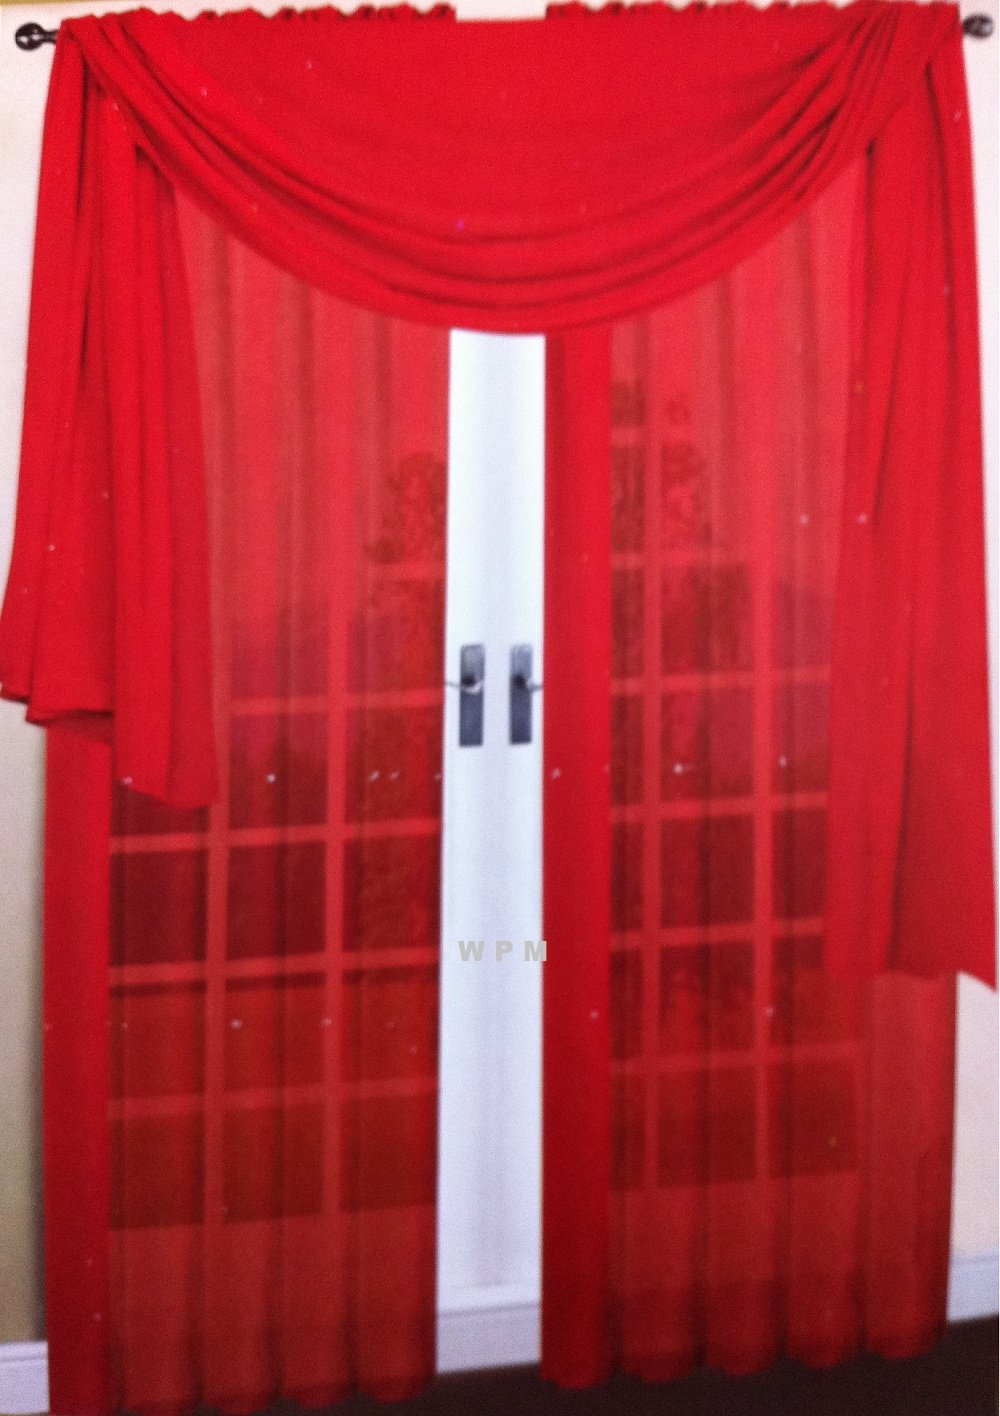 amazoncom 3 piece red sheer voile curtain panel set 2 red panels and 1 scarf home u0026 kitchen